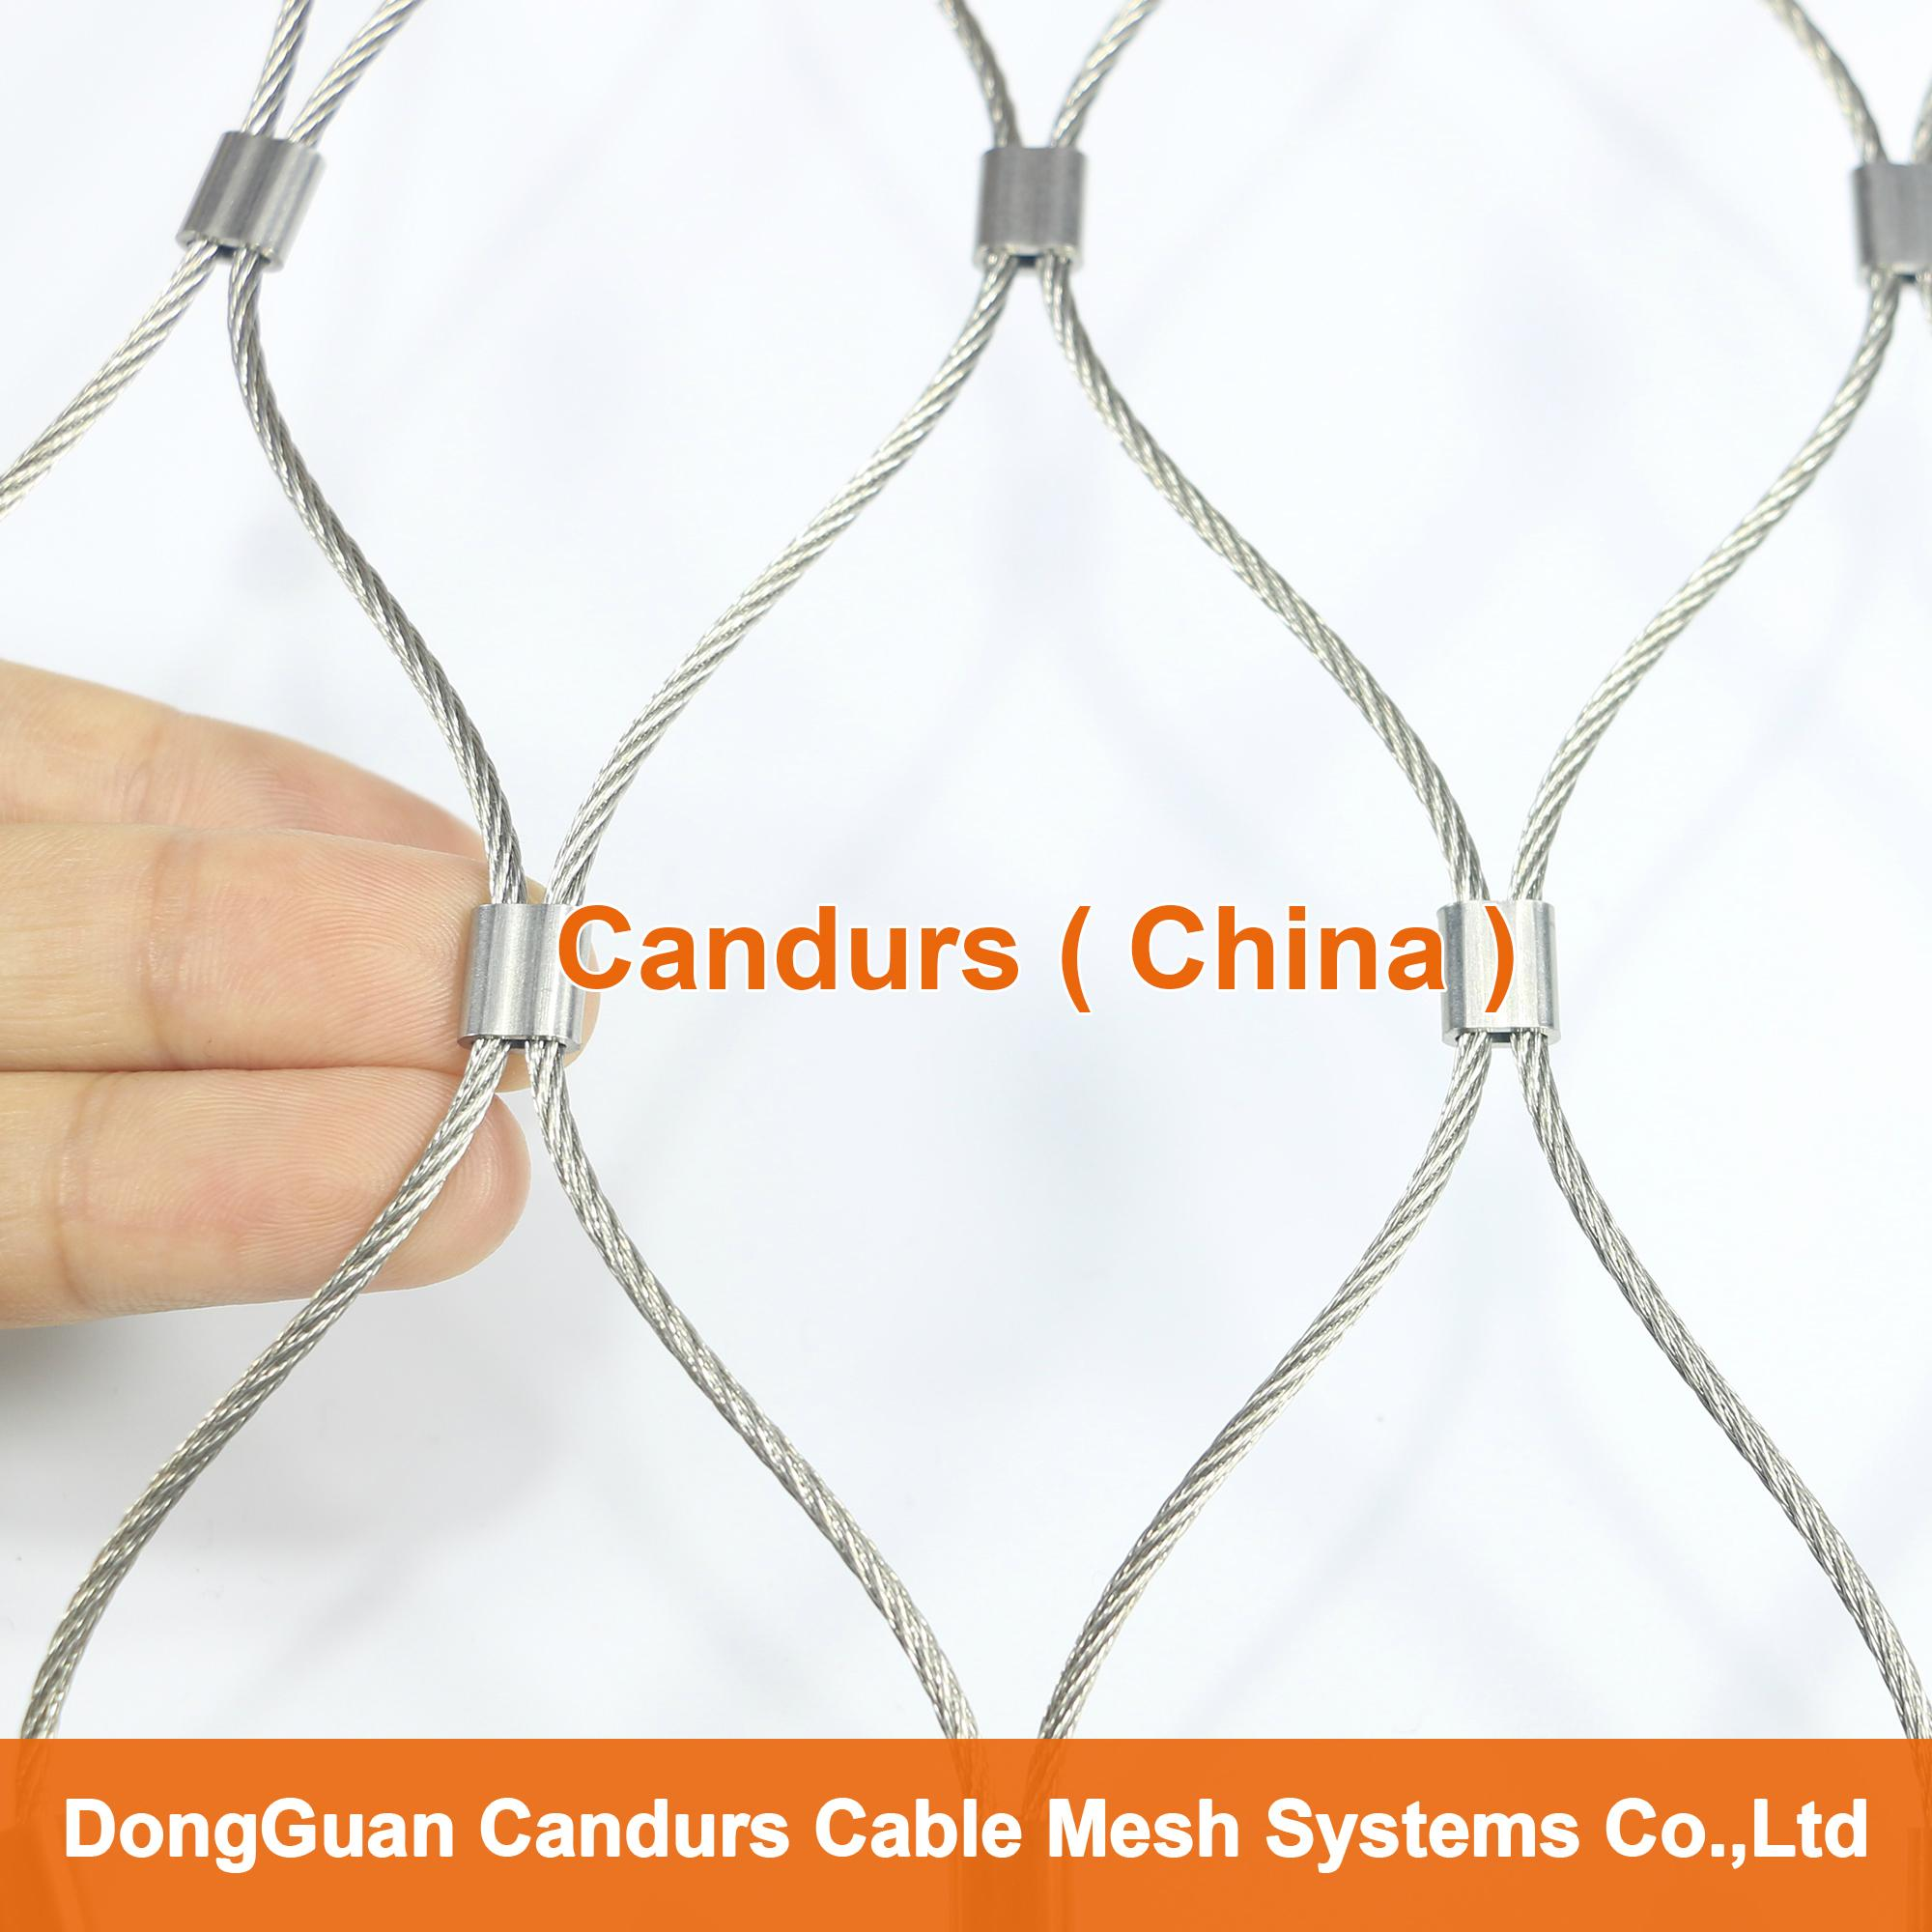 Stainless Steel Clip Cable Netting - China - Manufacturer - Flexible